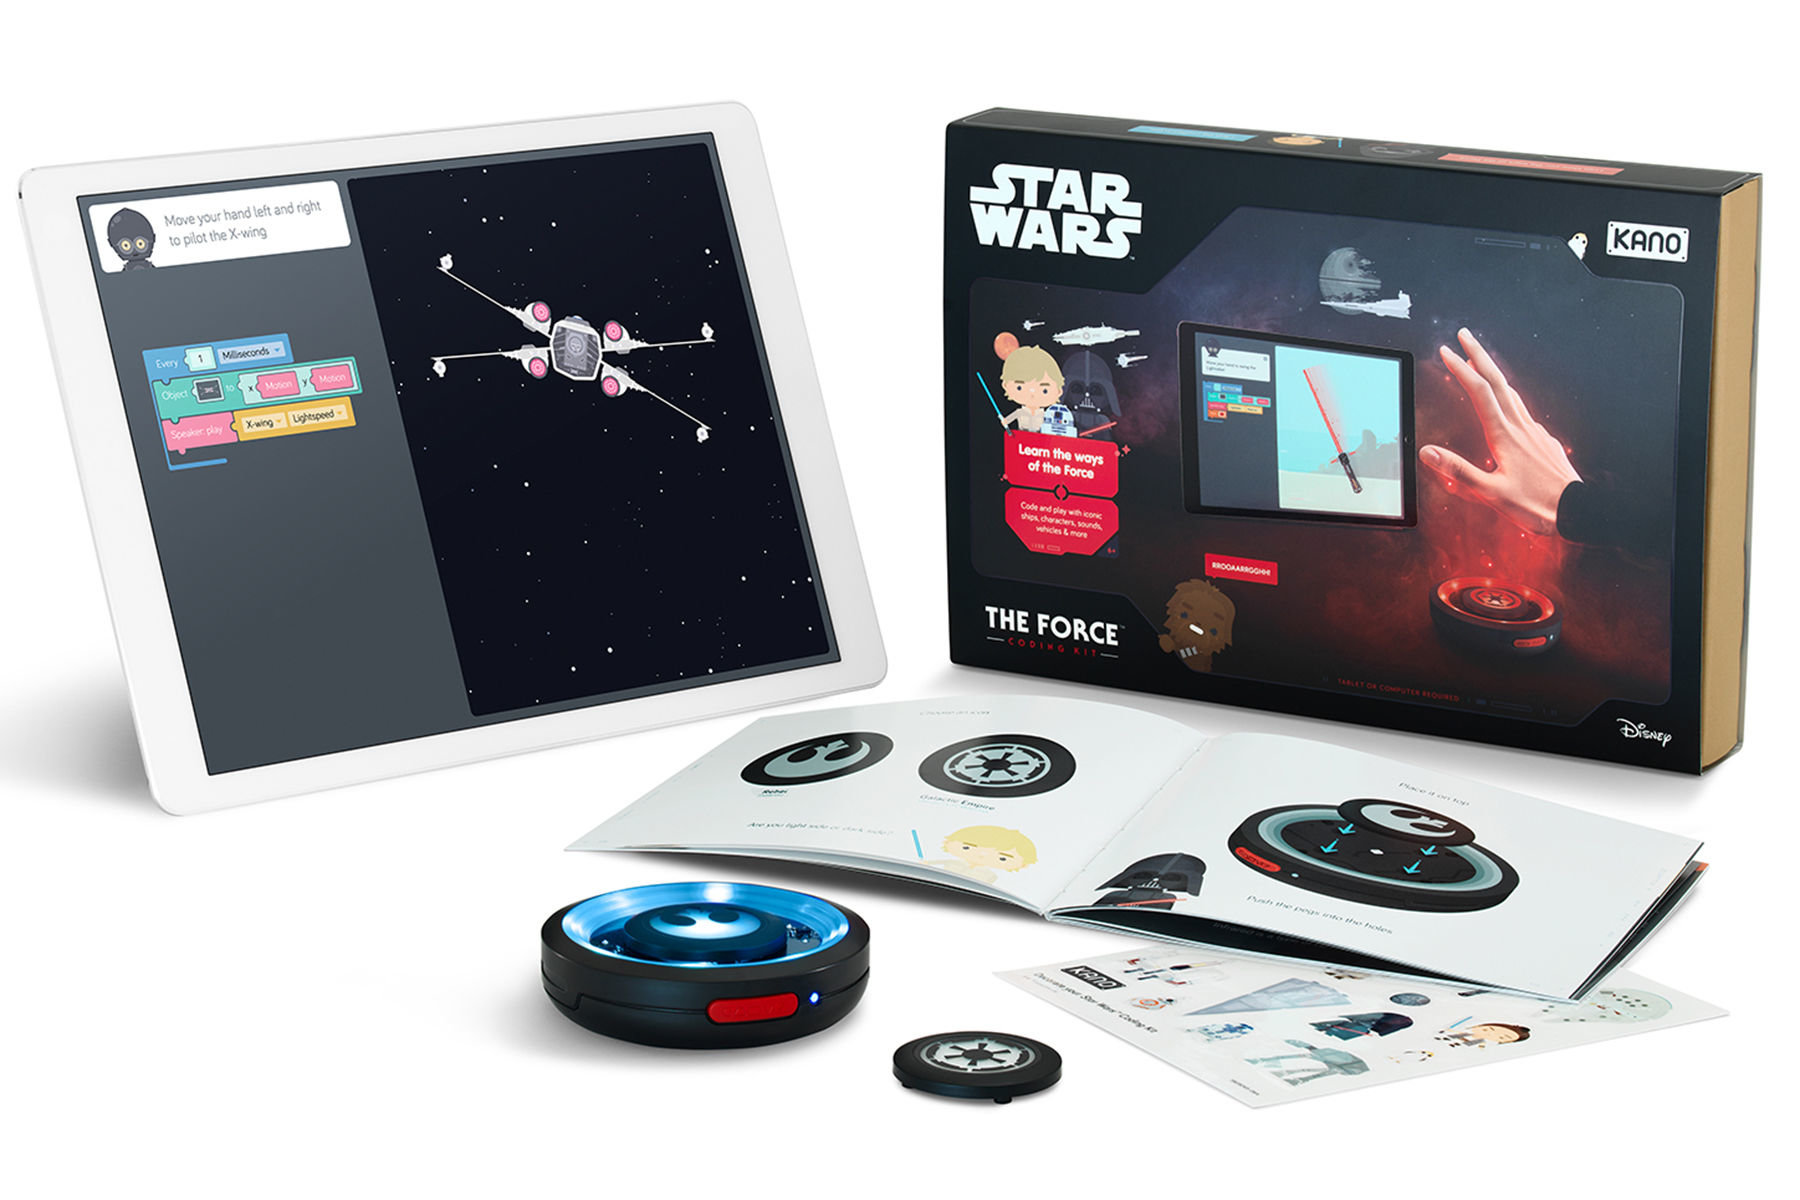 Kano Star Wars: The Force Coding Kit